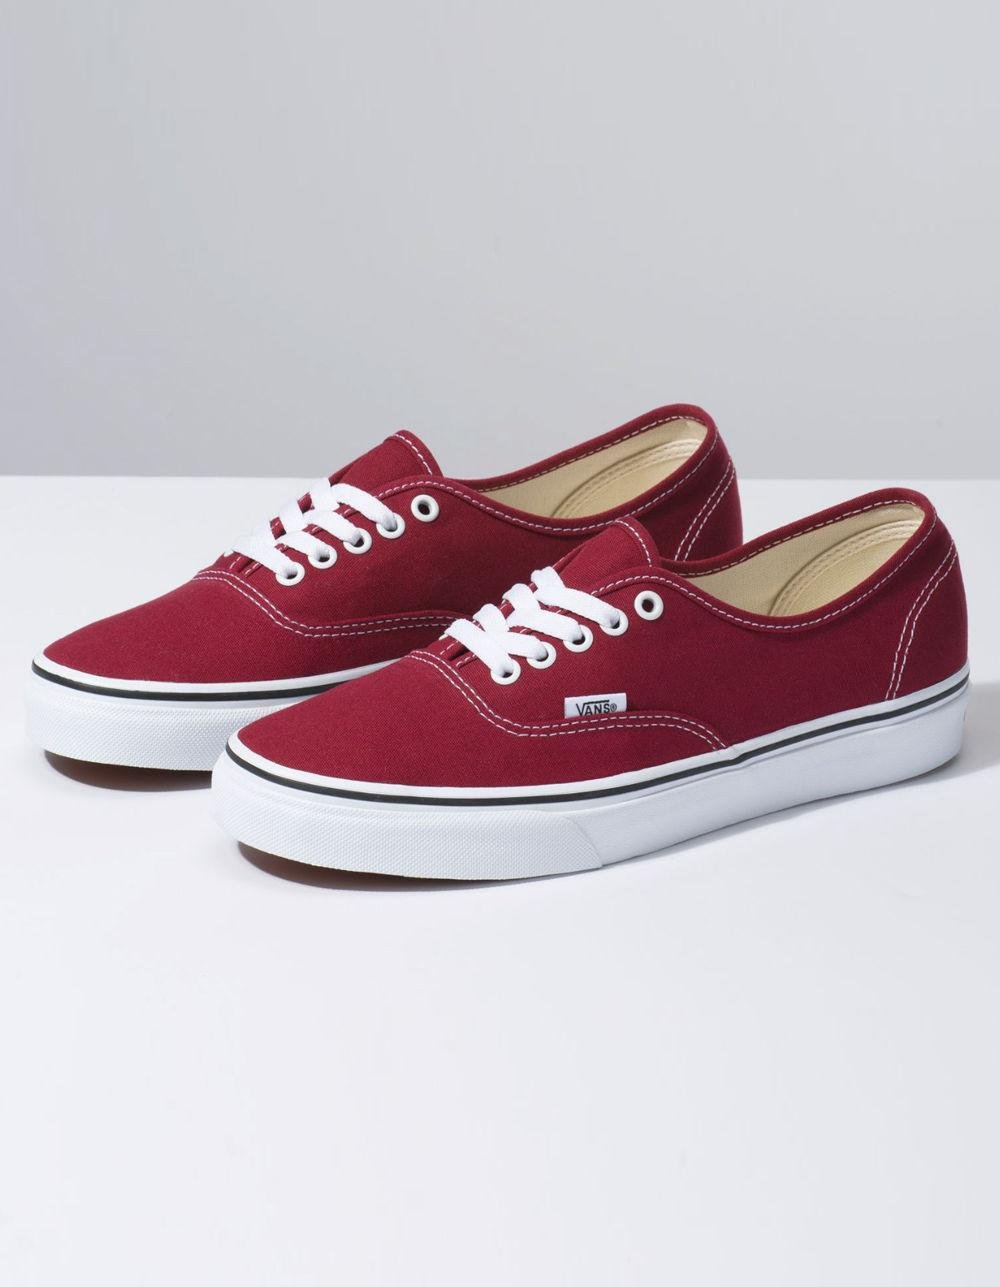 Lyst - Vans Authentic Rumba Red   True White Shoes in Red - Save 61% 9d0620687